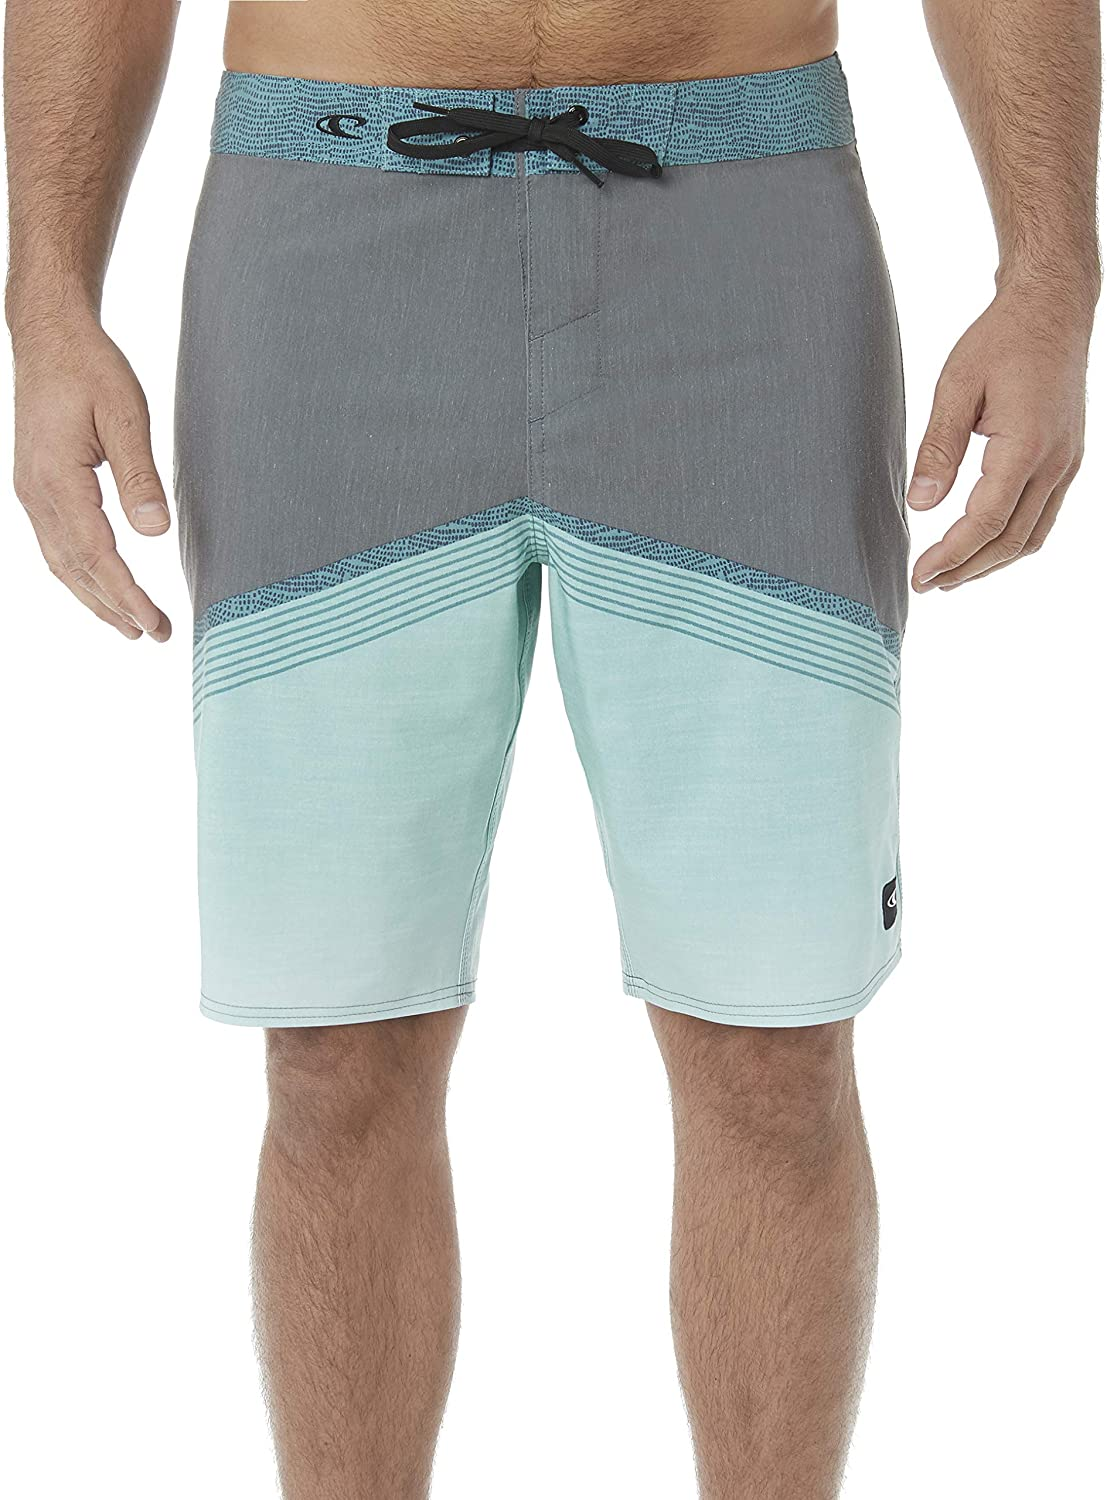 O'NEILL Men's 21 Inch Swim Stretch Boardshort Outseam mart Large special price